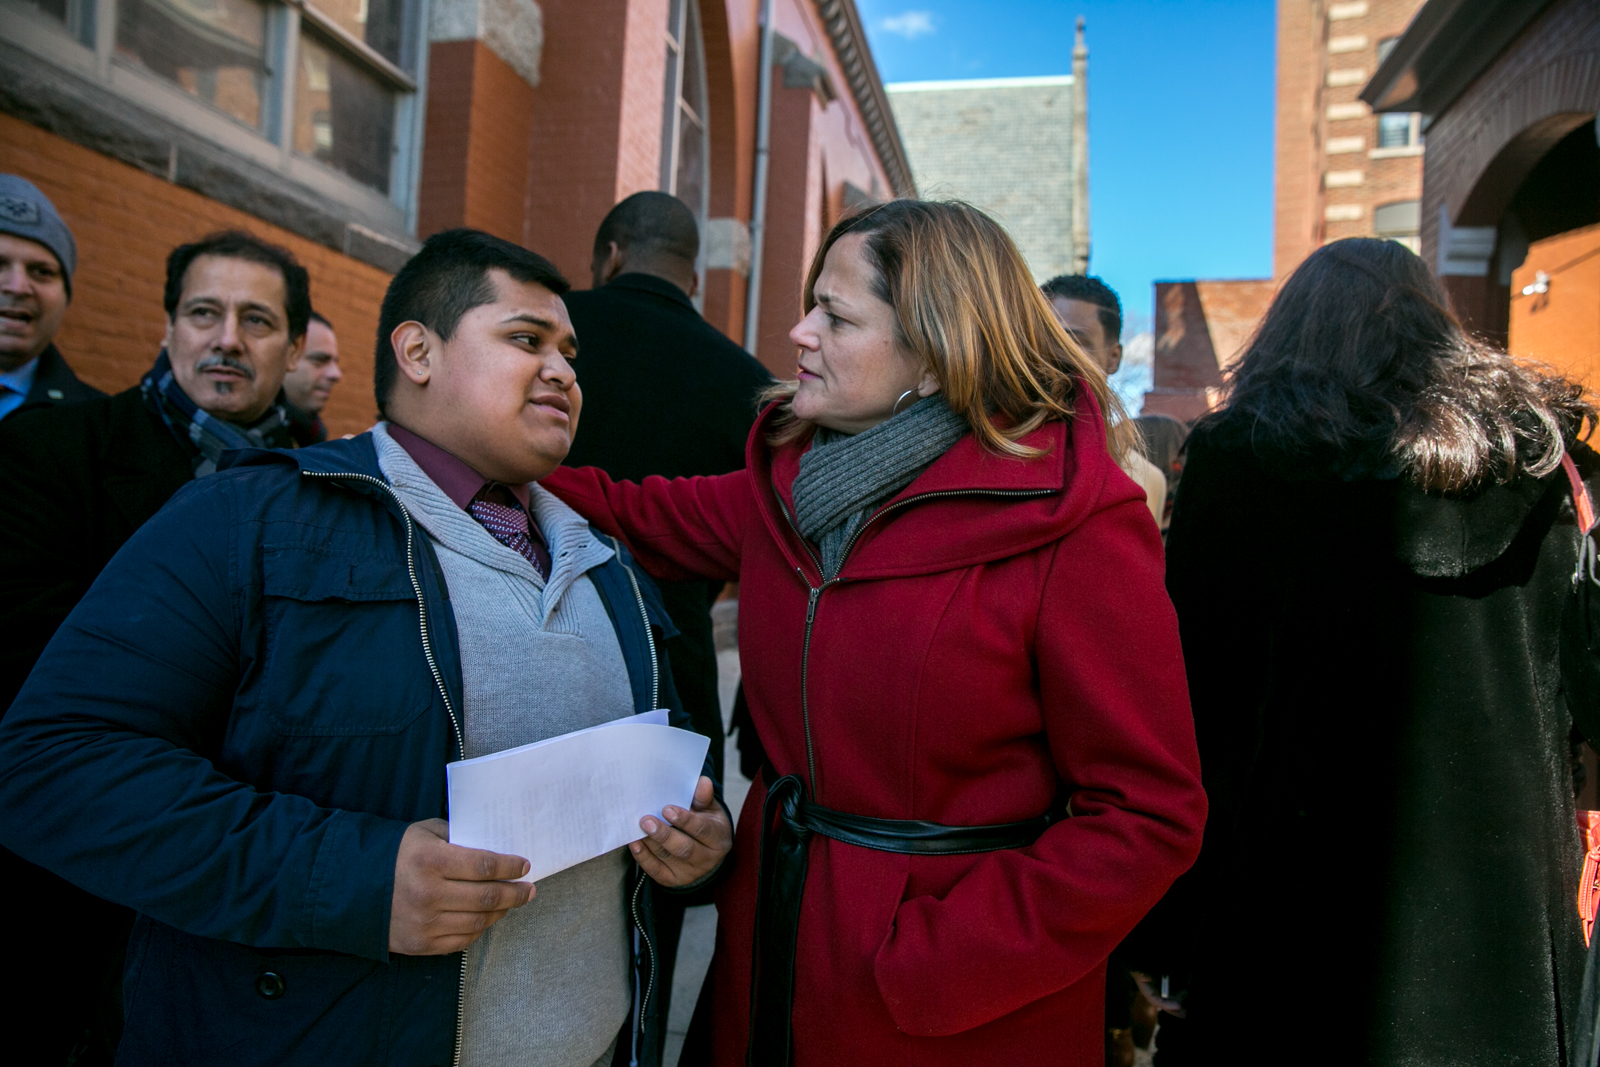 Council Speaker Melissa Mark-Viverito with Cesar Pena at the signing of immigration legislation. (Photo: William Alatriste for the New York City Council)